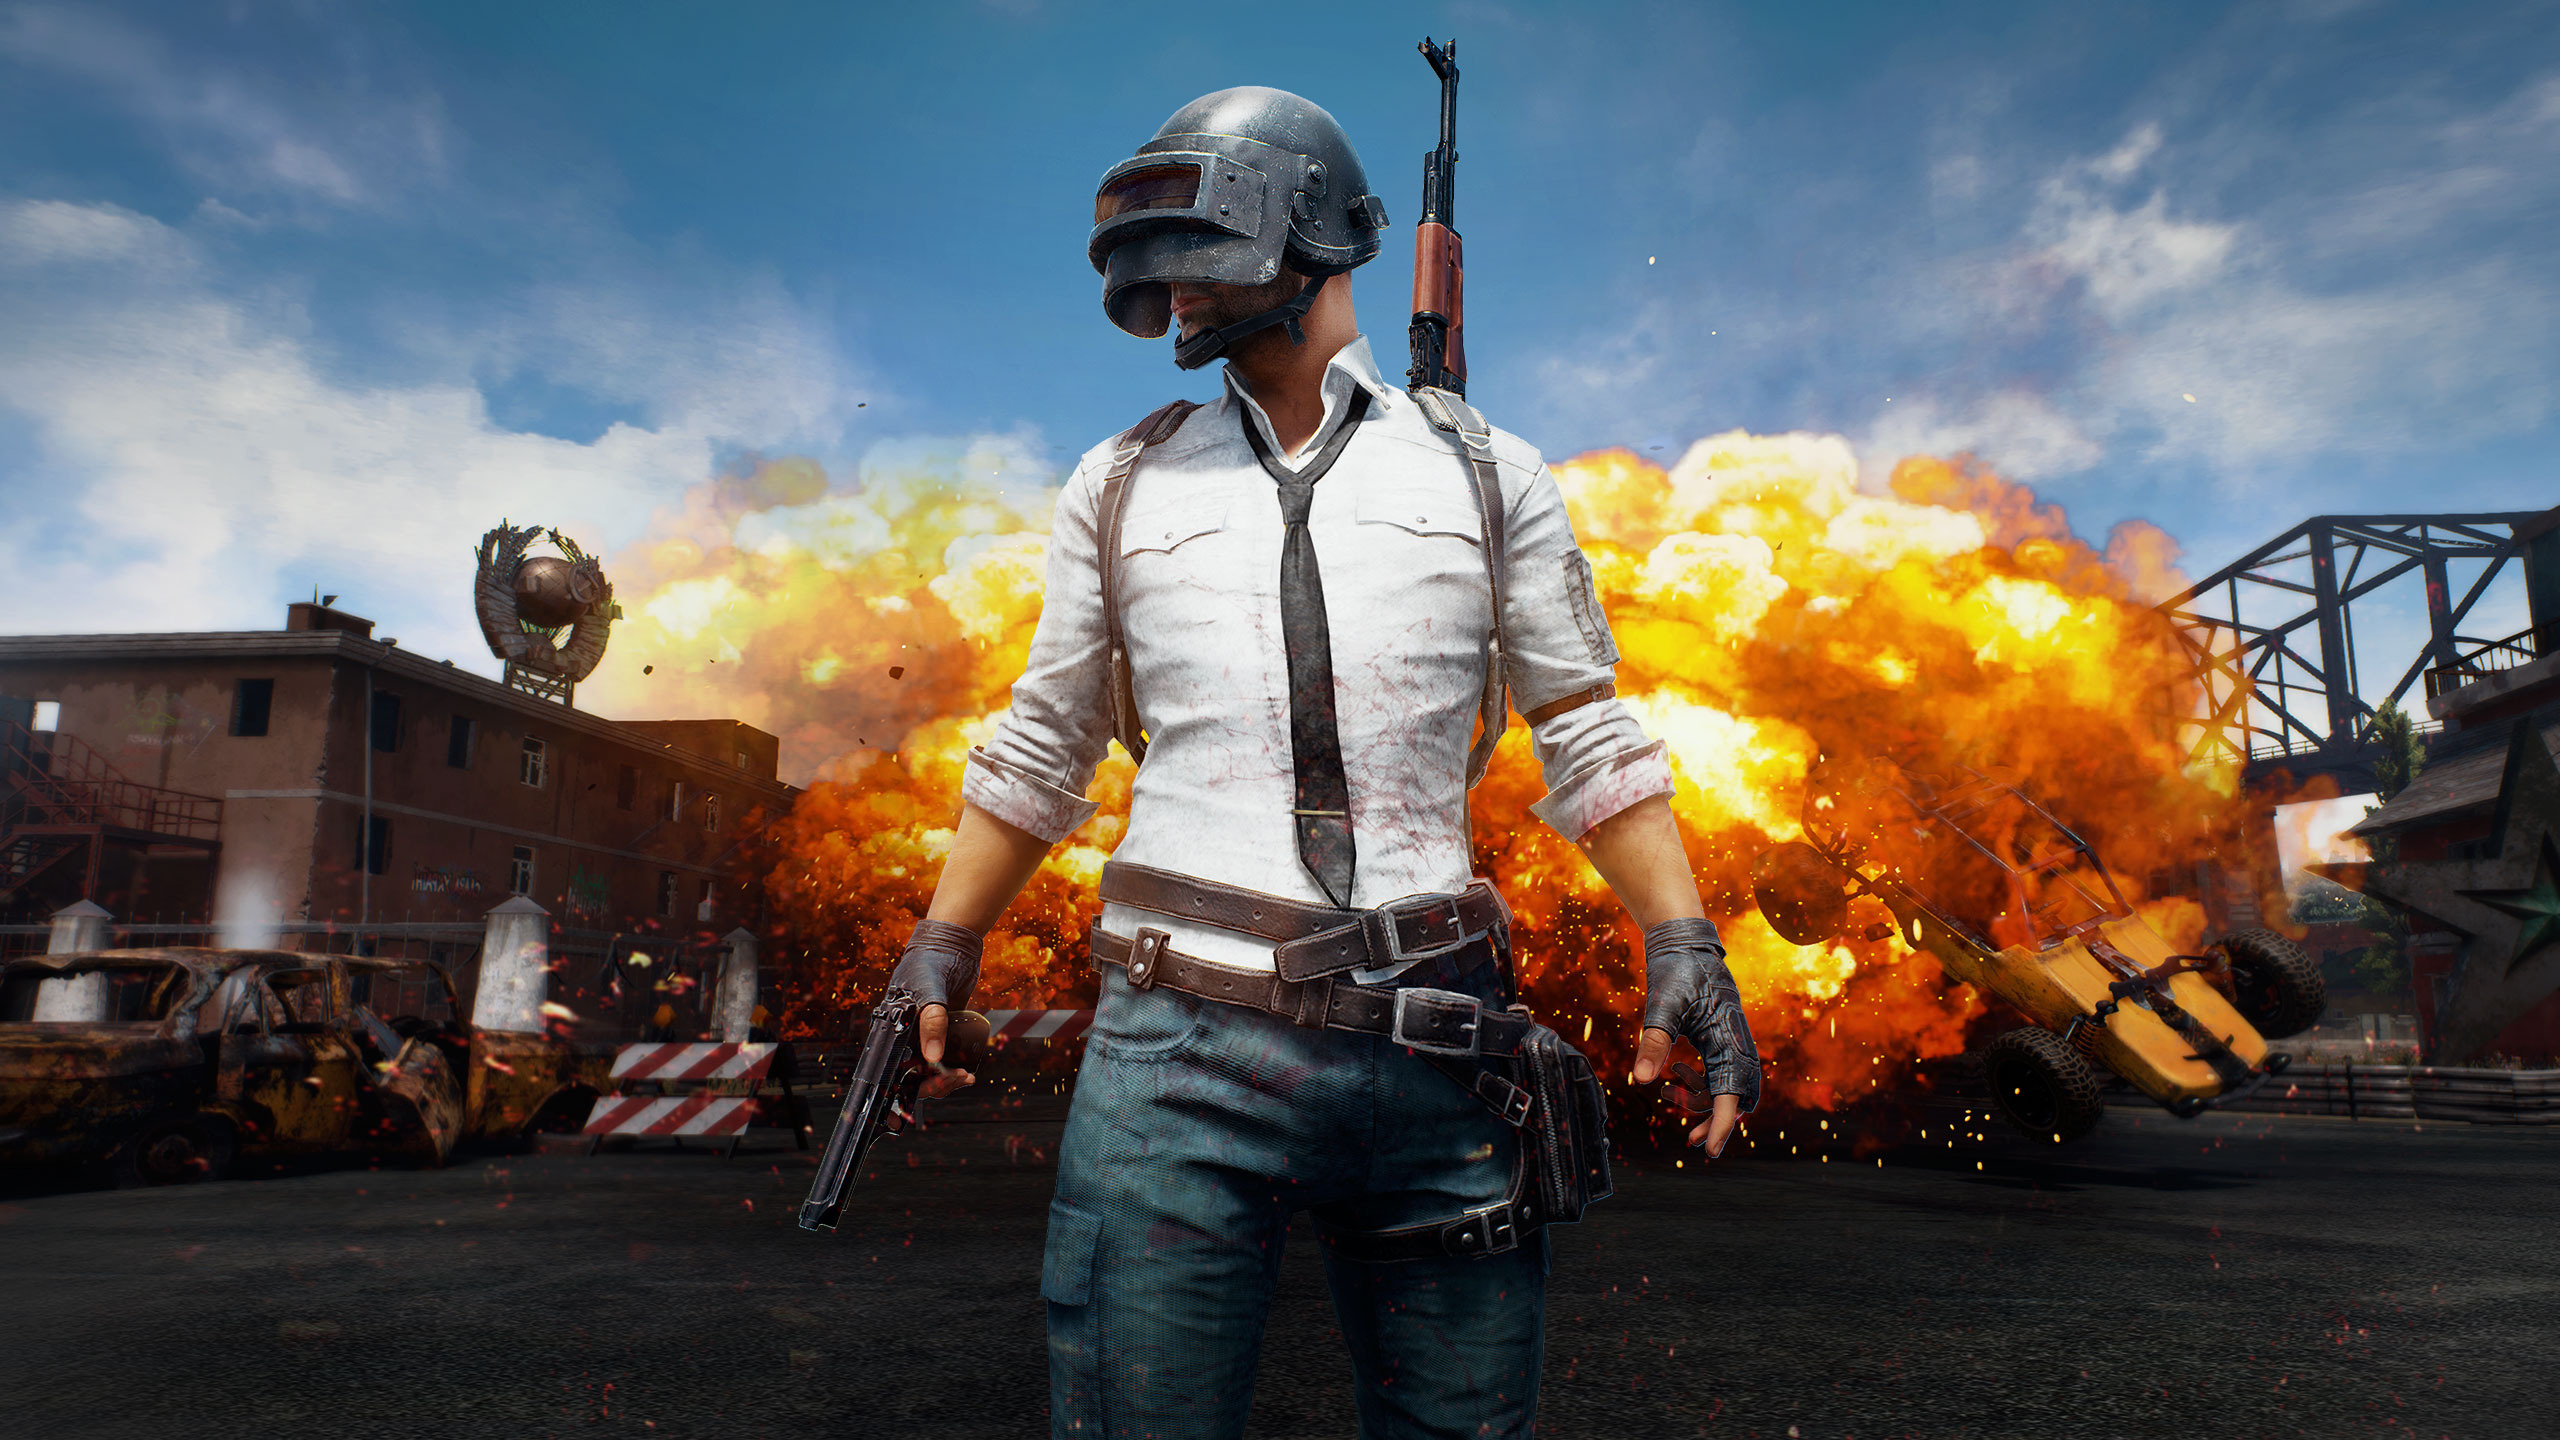 Download Pubg 1 Wallpapers To Your Cell Phone: Los 15 Mejores Juegos De PC Del 2017